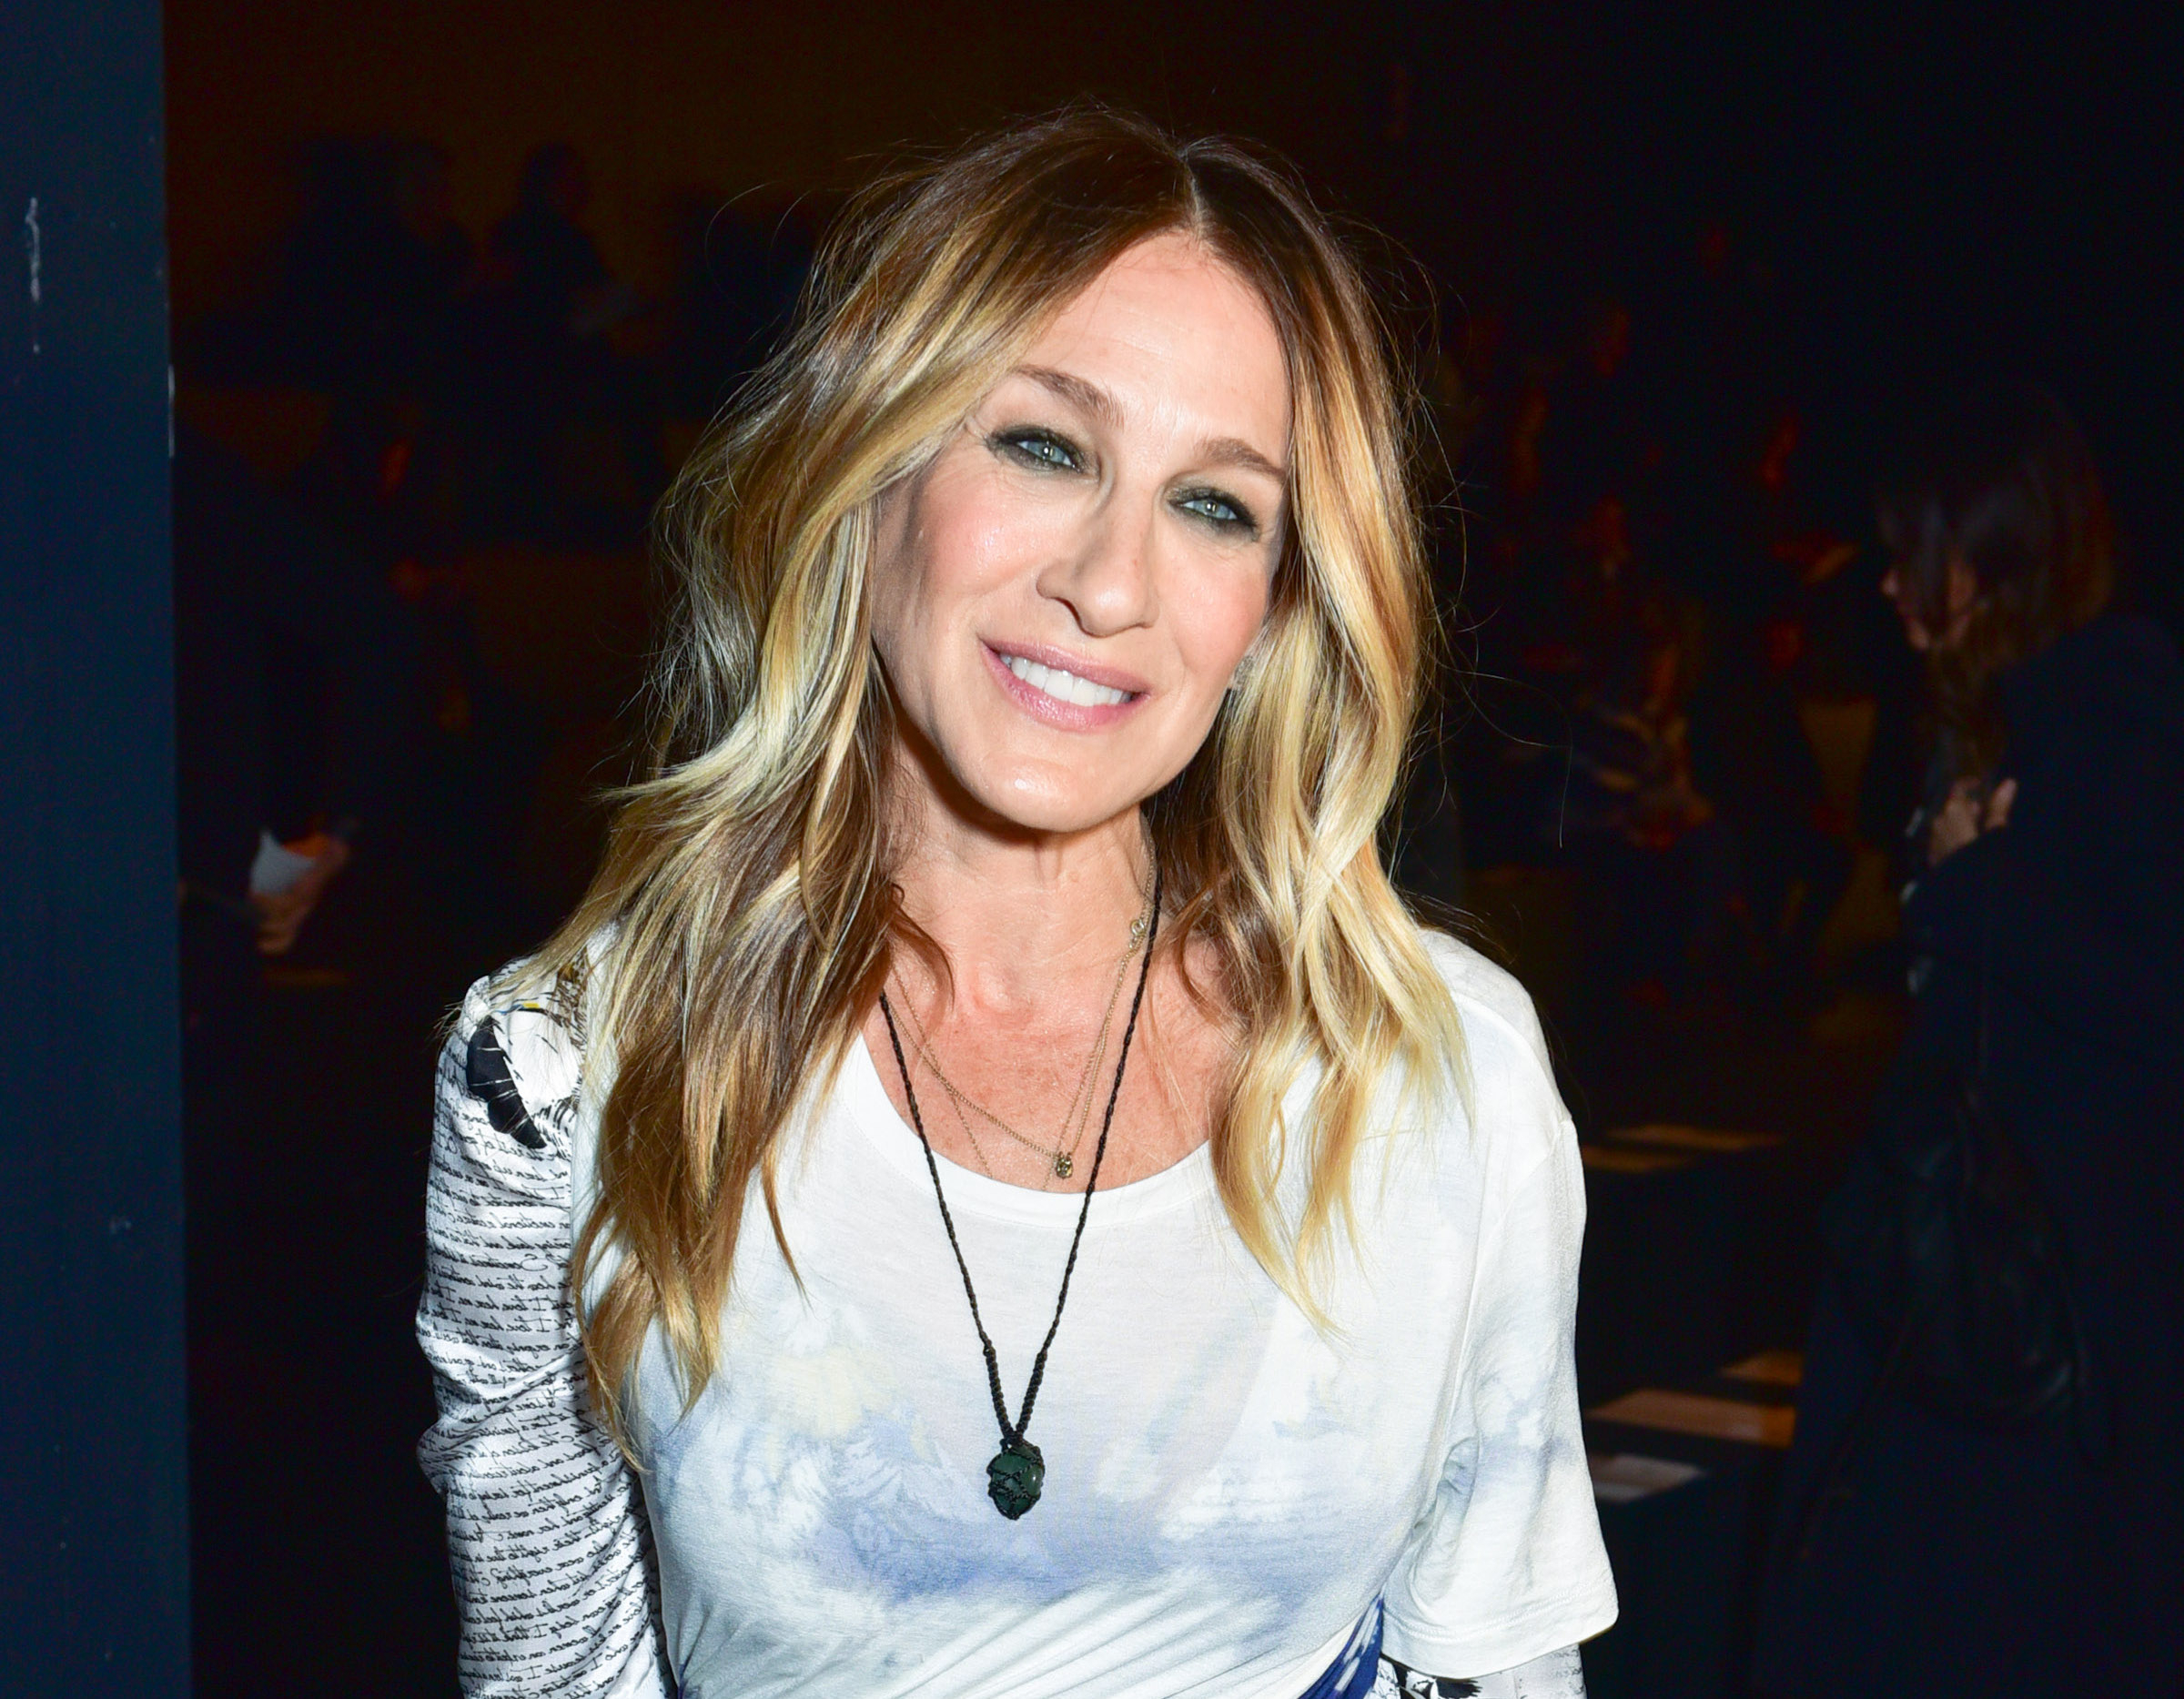 Sarah Jessica Parker Just Got Bangs, And It's A Chic New Hairstyle With 2017 Sarah Jessica Parker Medium Hairstyles (Gallery 19 of 20)